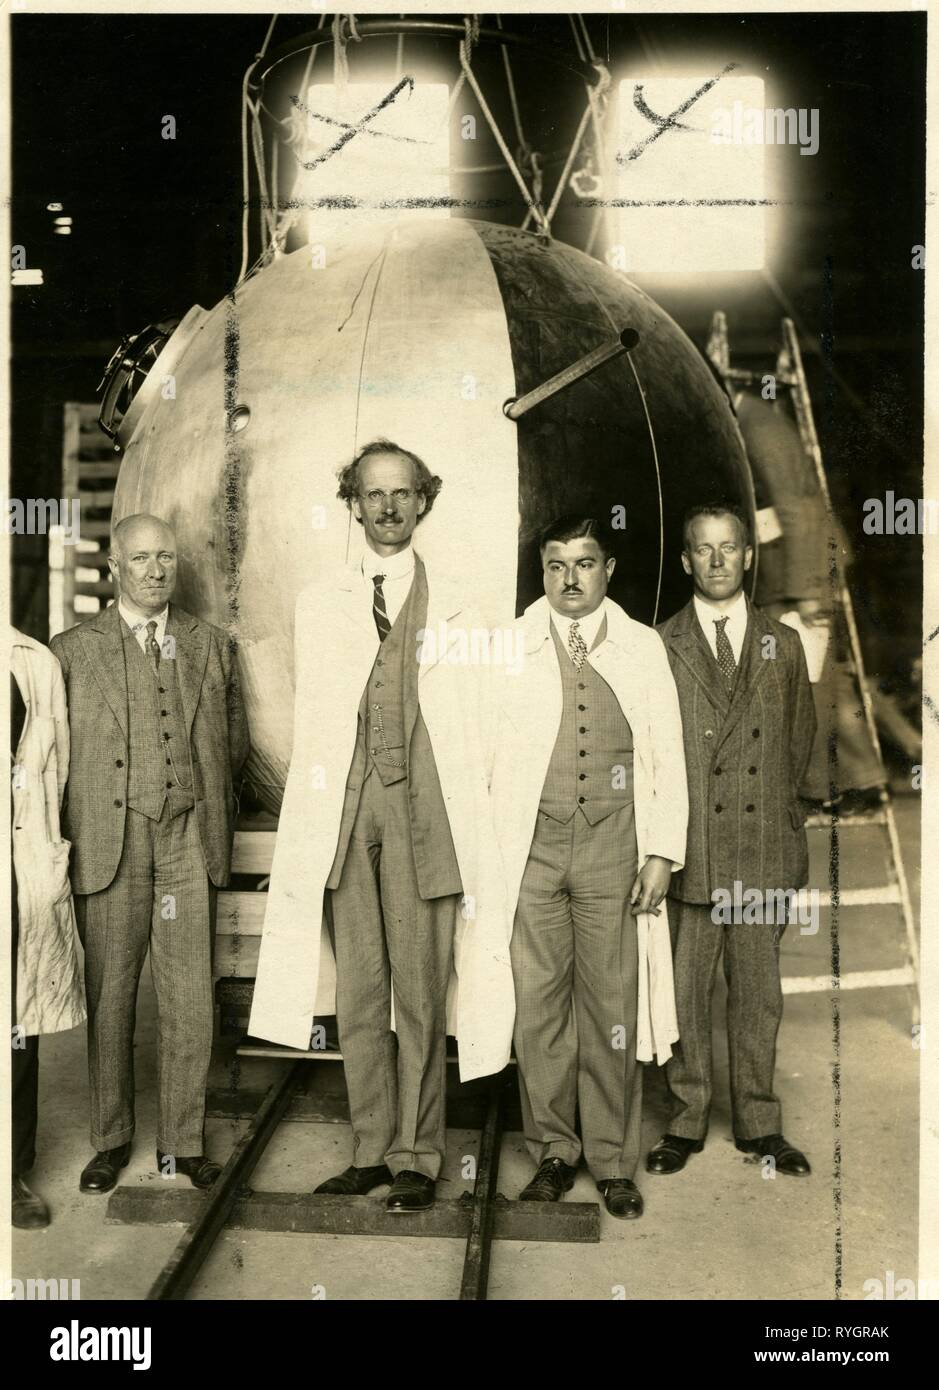 On the 27th May 1931, Professor Piccard, a Swiss physicist, took off for the stratosphere in a pressurised aluminium capsule, attached to a large hydrogen balloon. Piccard and his assistant, Paul Kipfer, reached a record height of 9.8 miles or 15,785 metres. They were launched in Augsberg, Germany and were hoping to touch down in the Adriatic, eventually crashing on a glacier in the Austrian Alps. They made a second ascent the next year reaching 10 miles, then went on in further ascents to the giddy height of 14 miles or 23,000 metres.  Piccard was the inspiration for Calculus in Tintin. - Stock Image